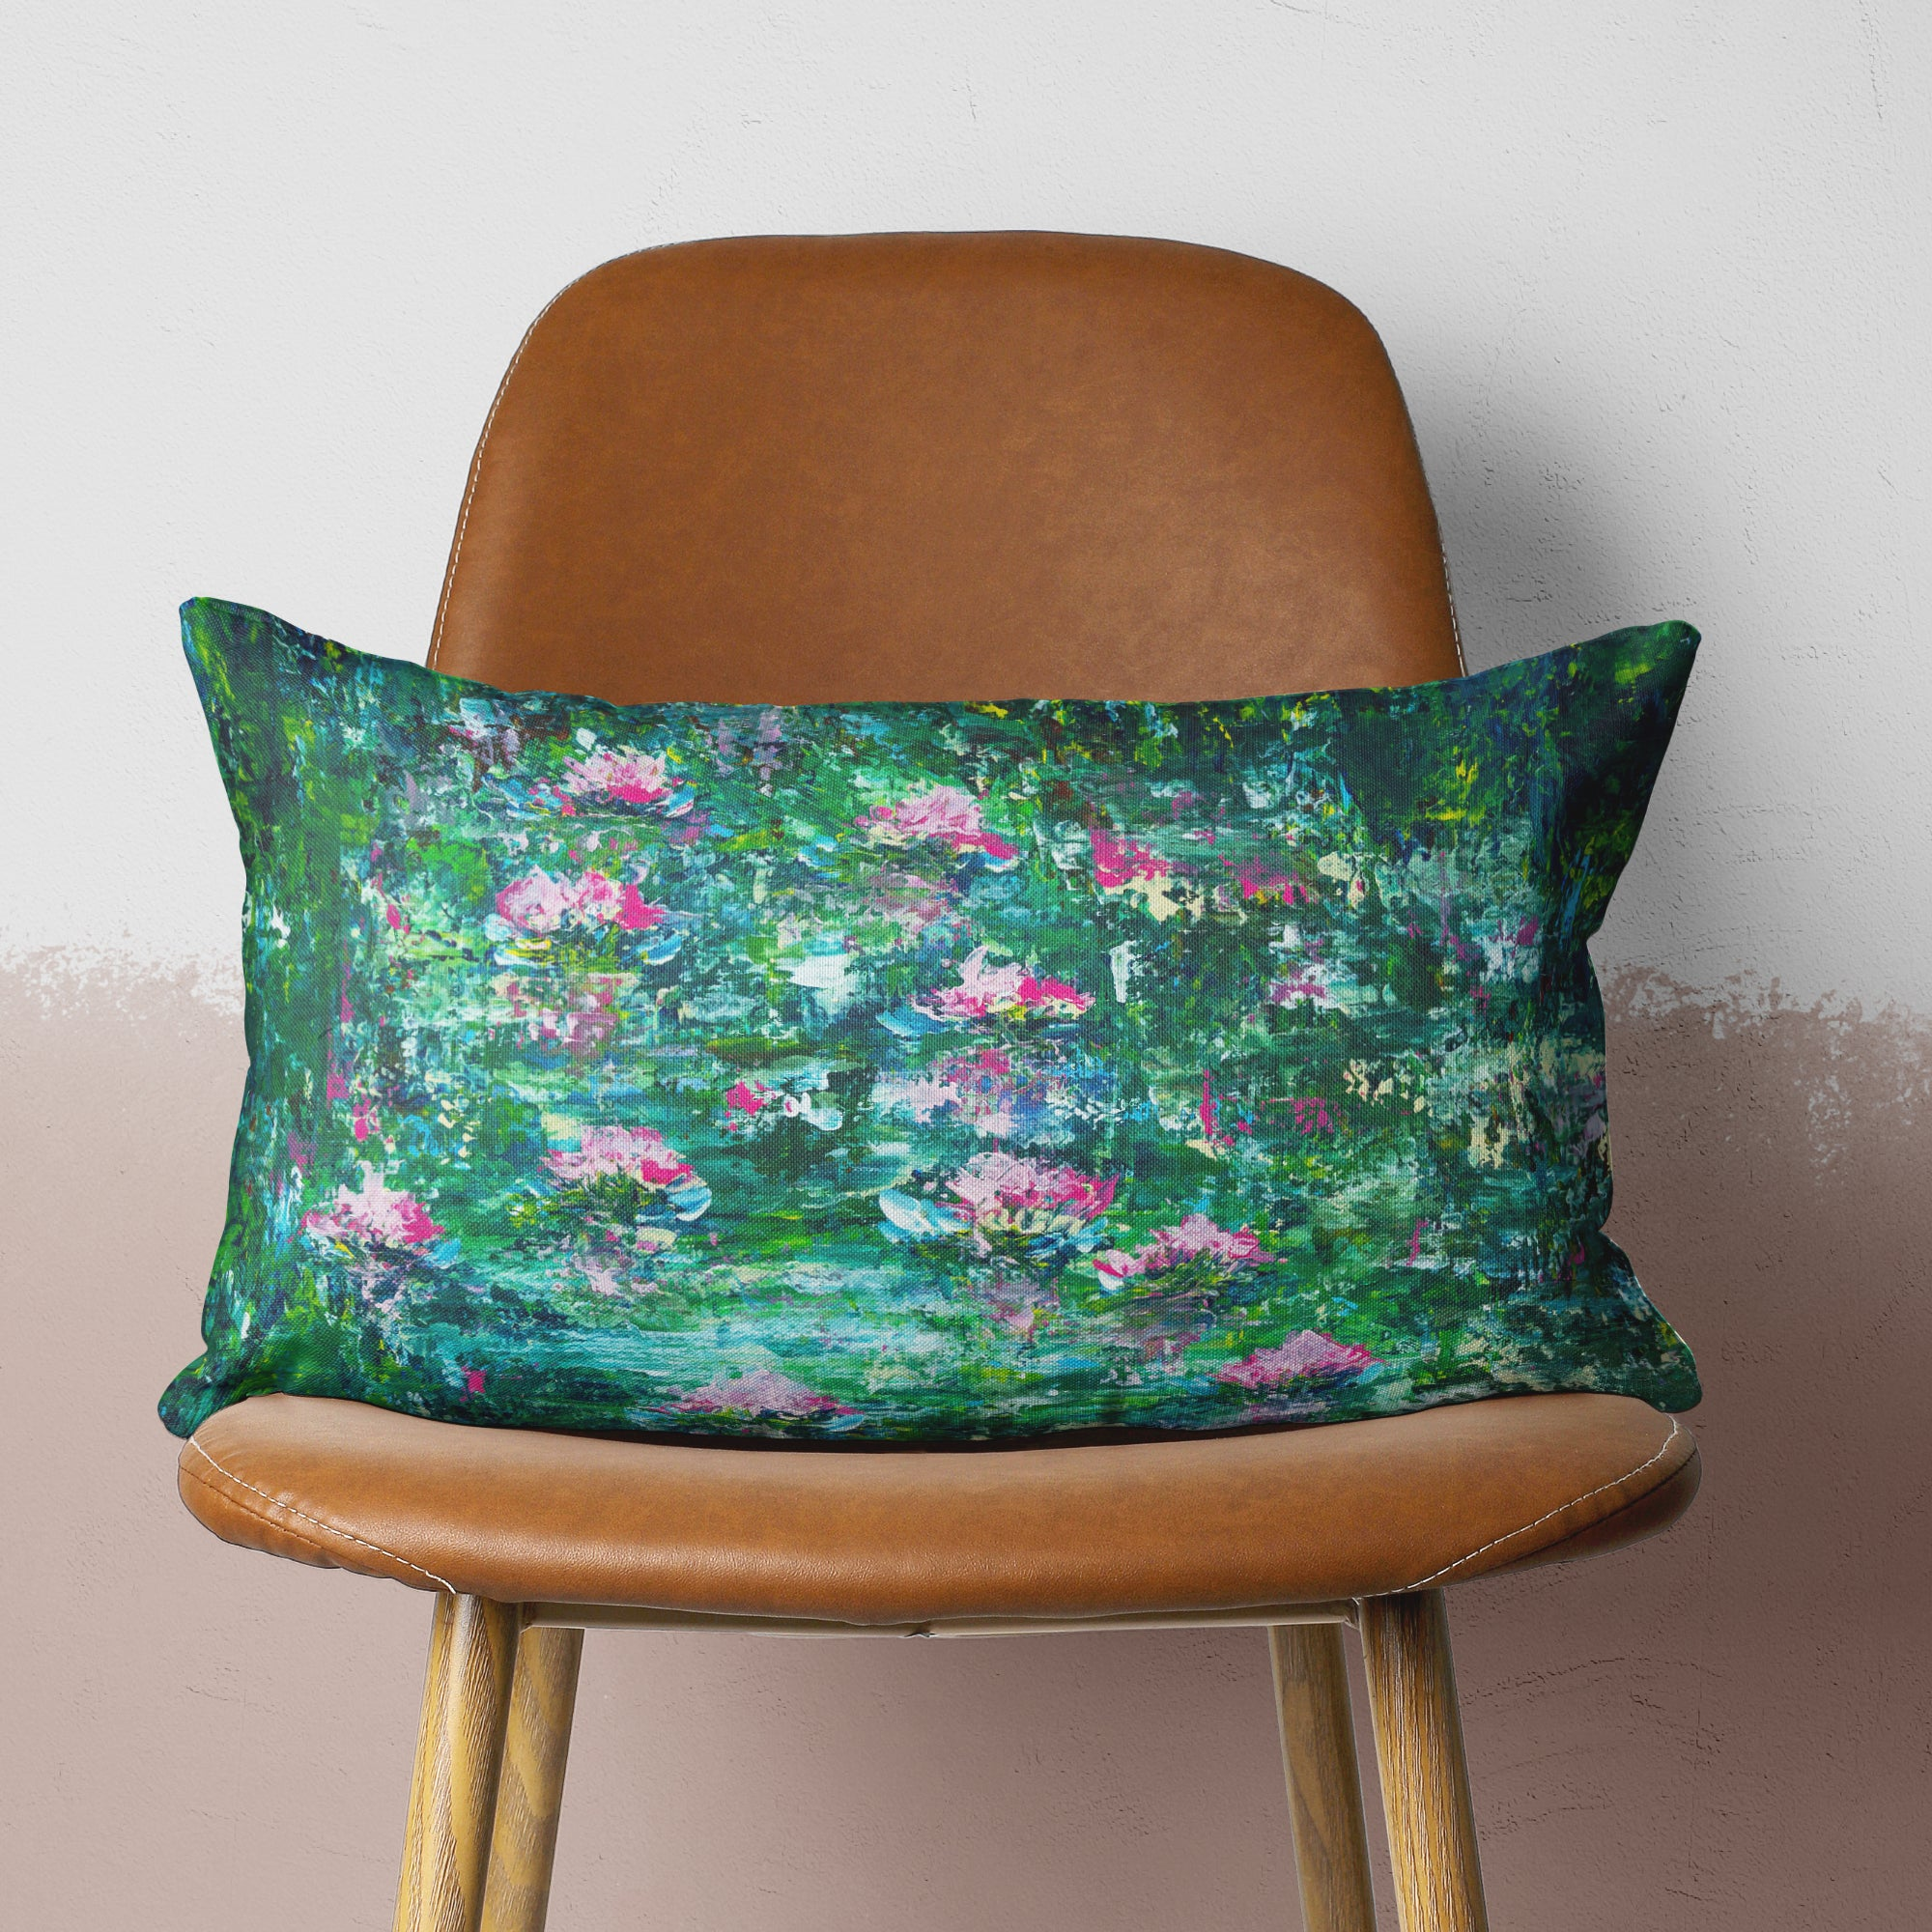 Green Impressionist pillow on chair